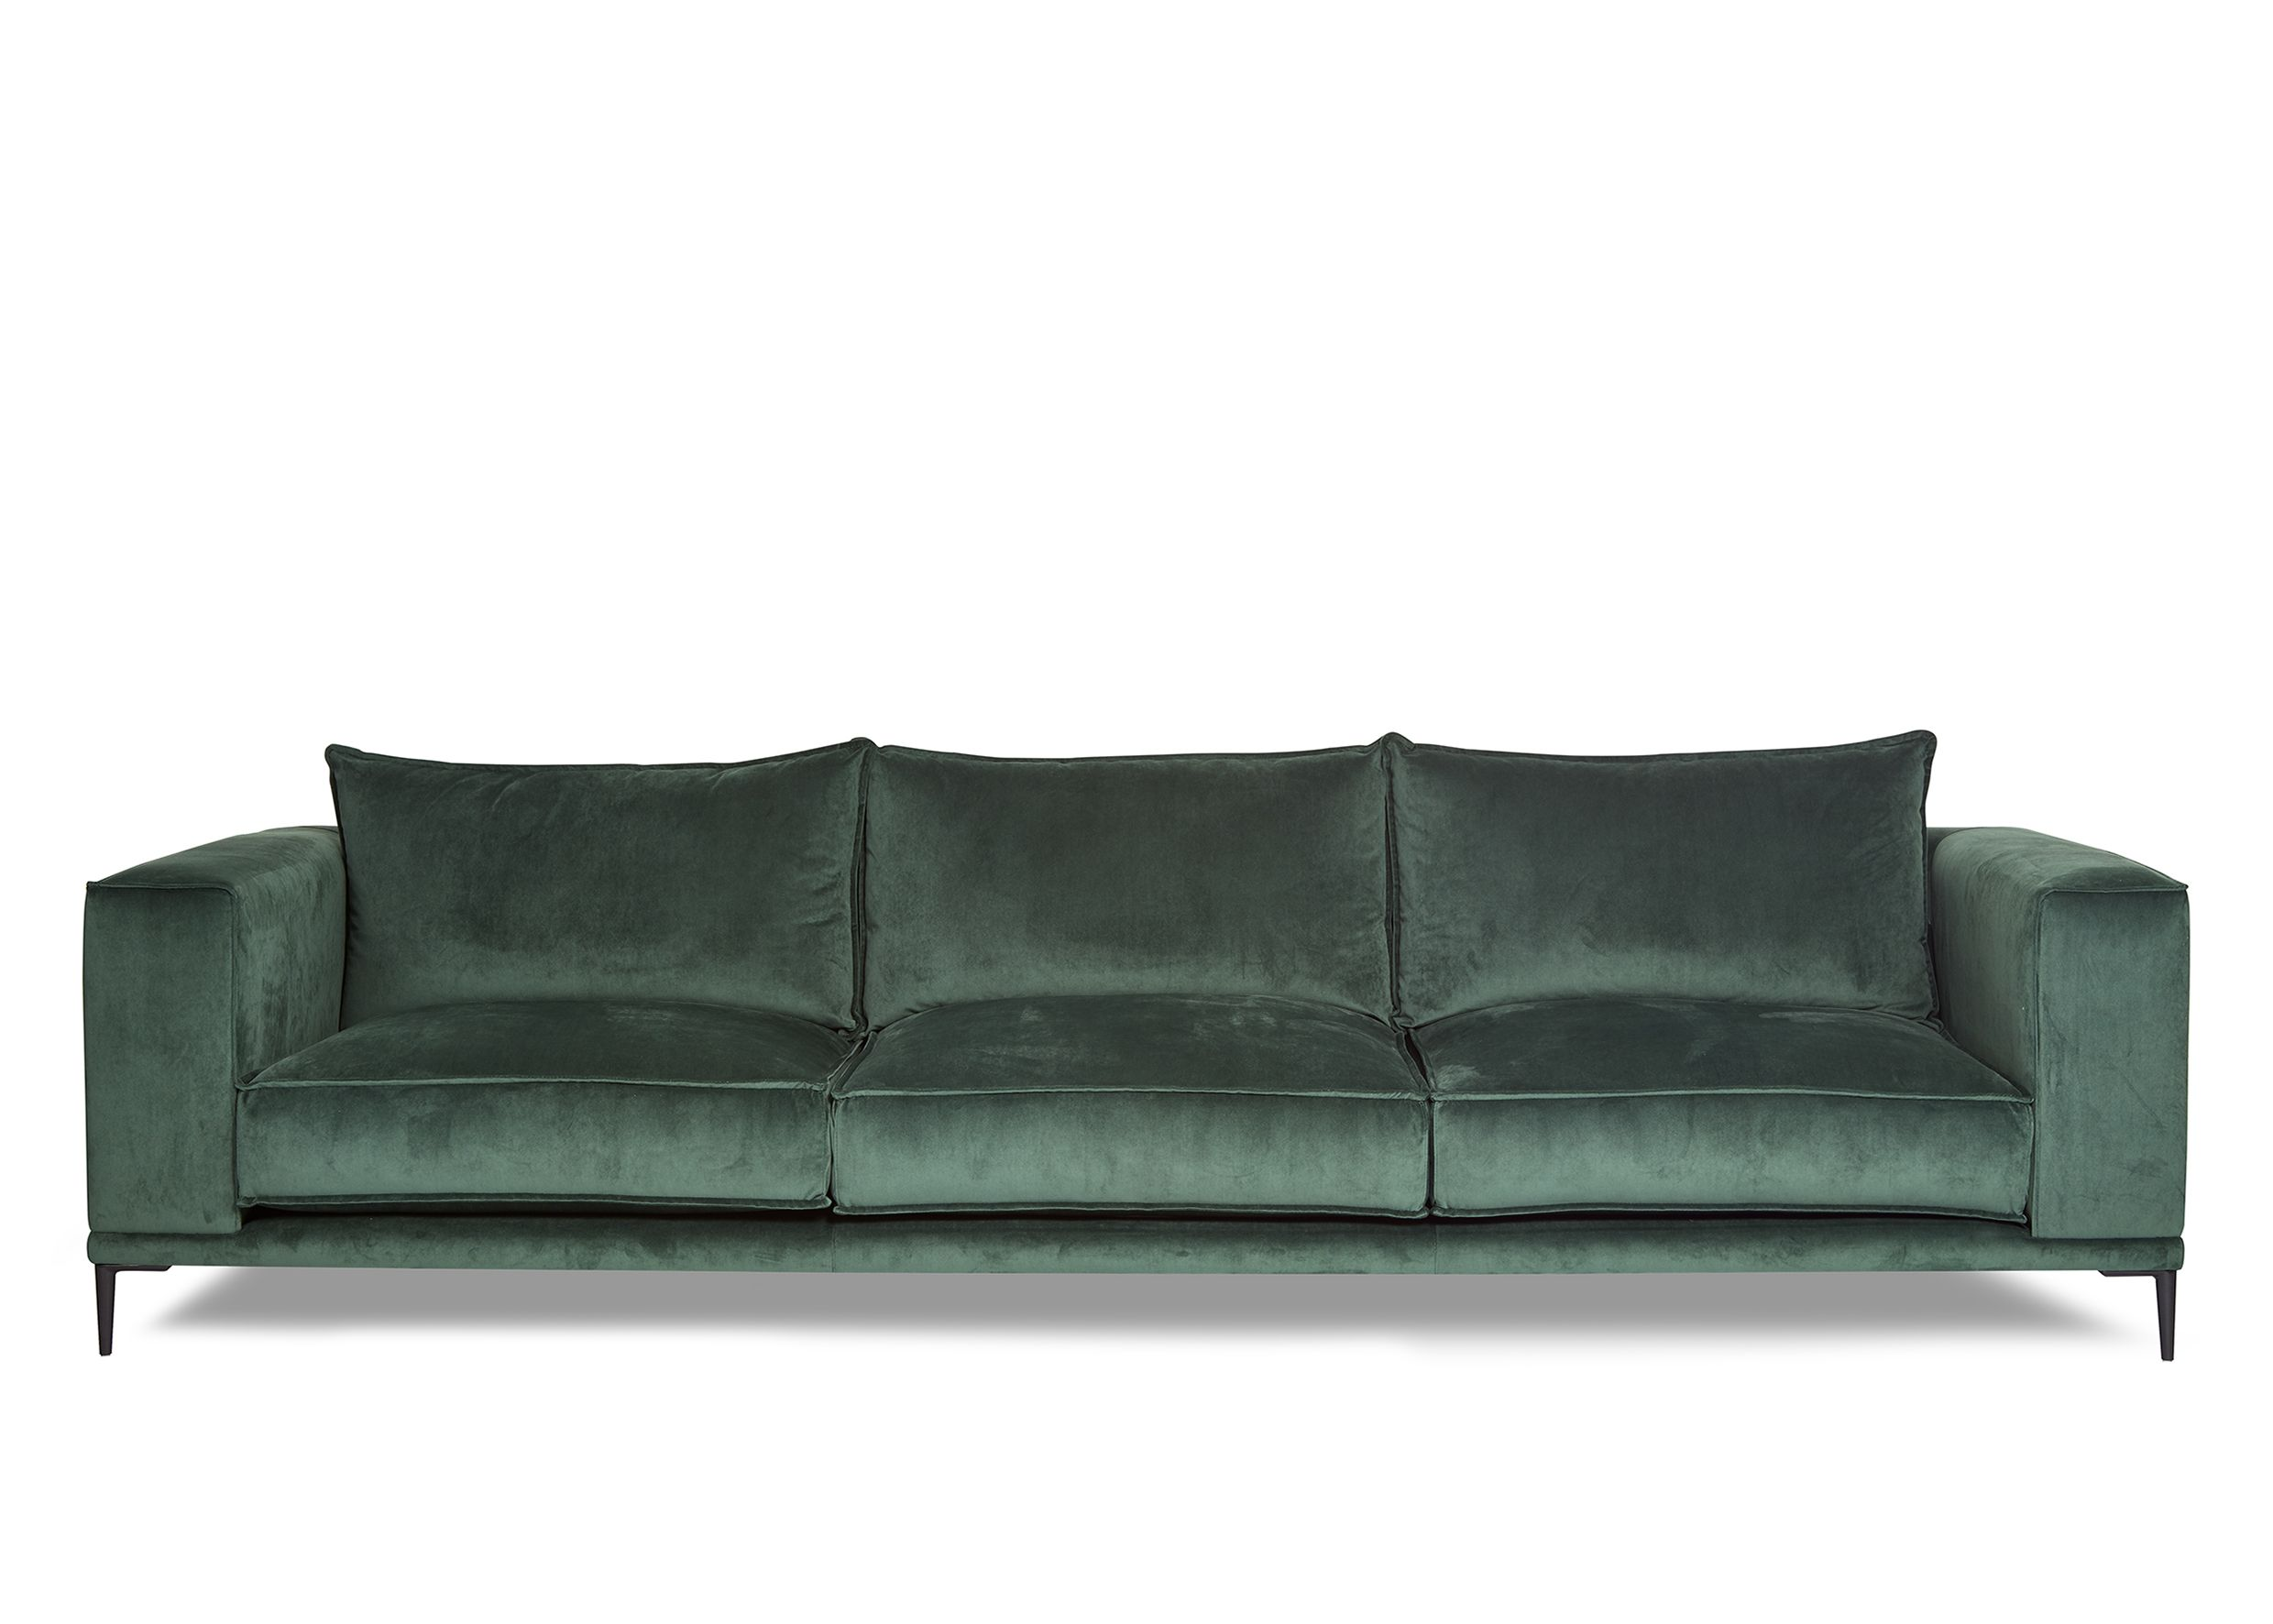 velvet sofas melbourne european toronto arthur g 39s green phoenix sofa is finished with